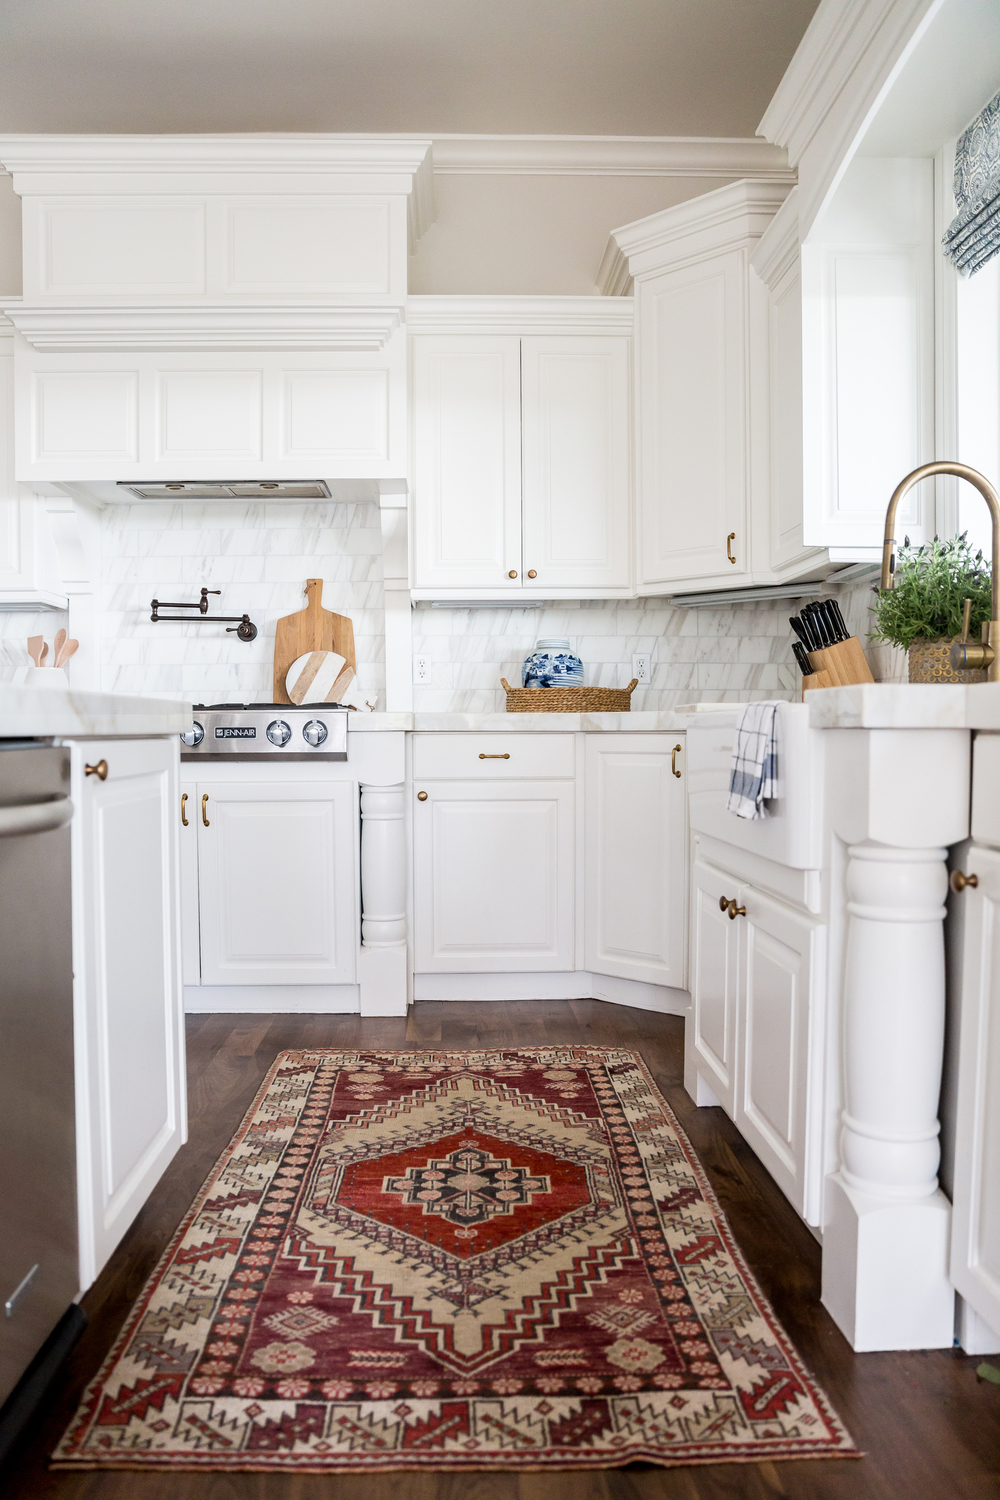 The power of white paint in a kitchen makeover || Studio McGee